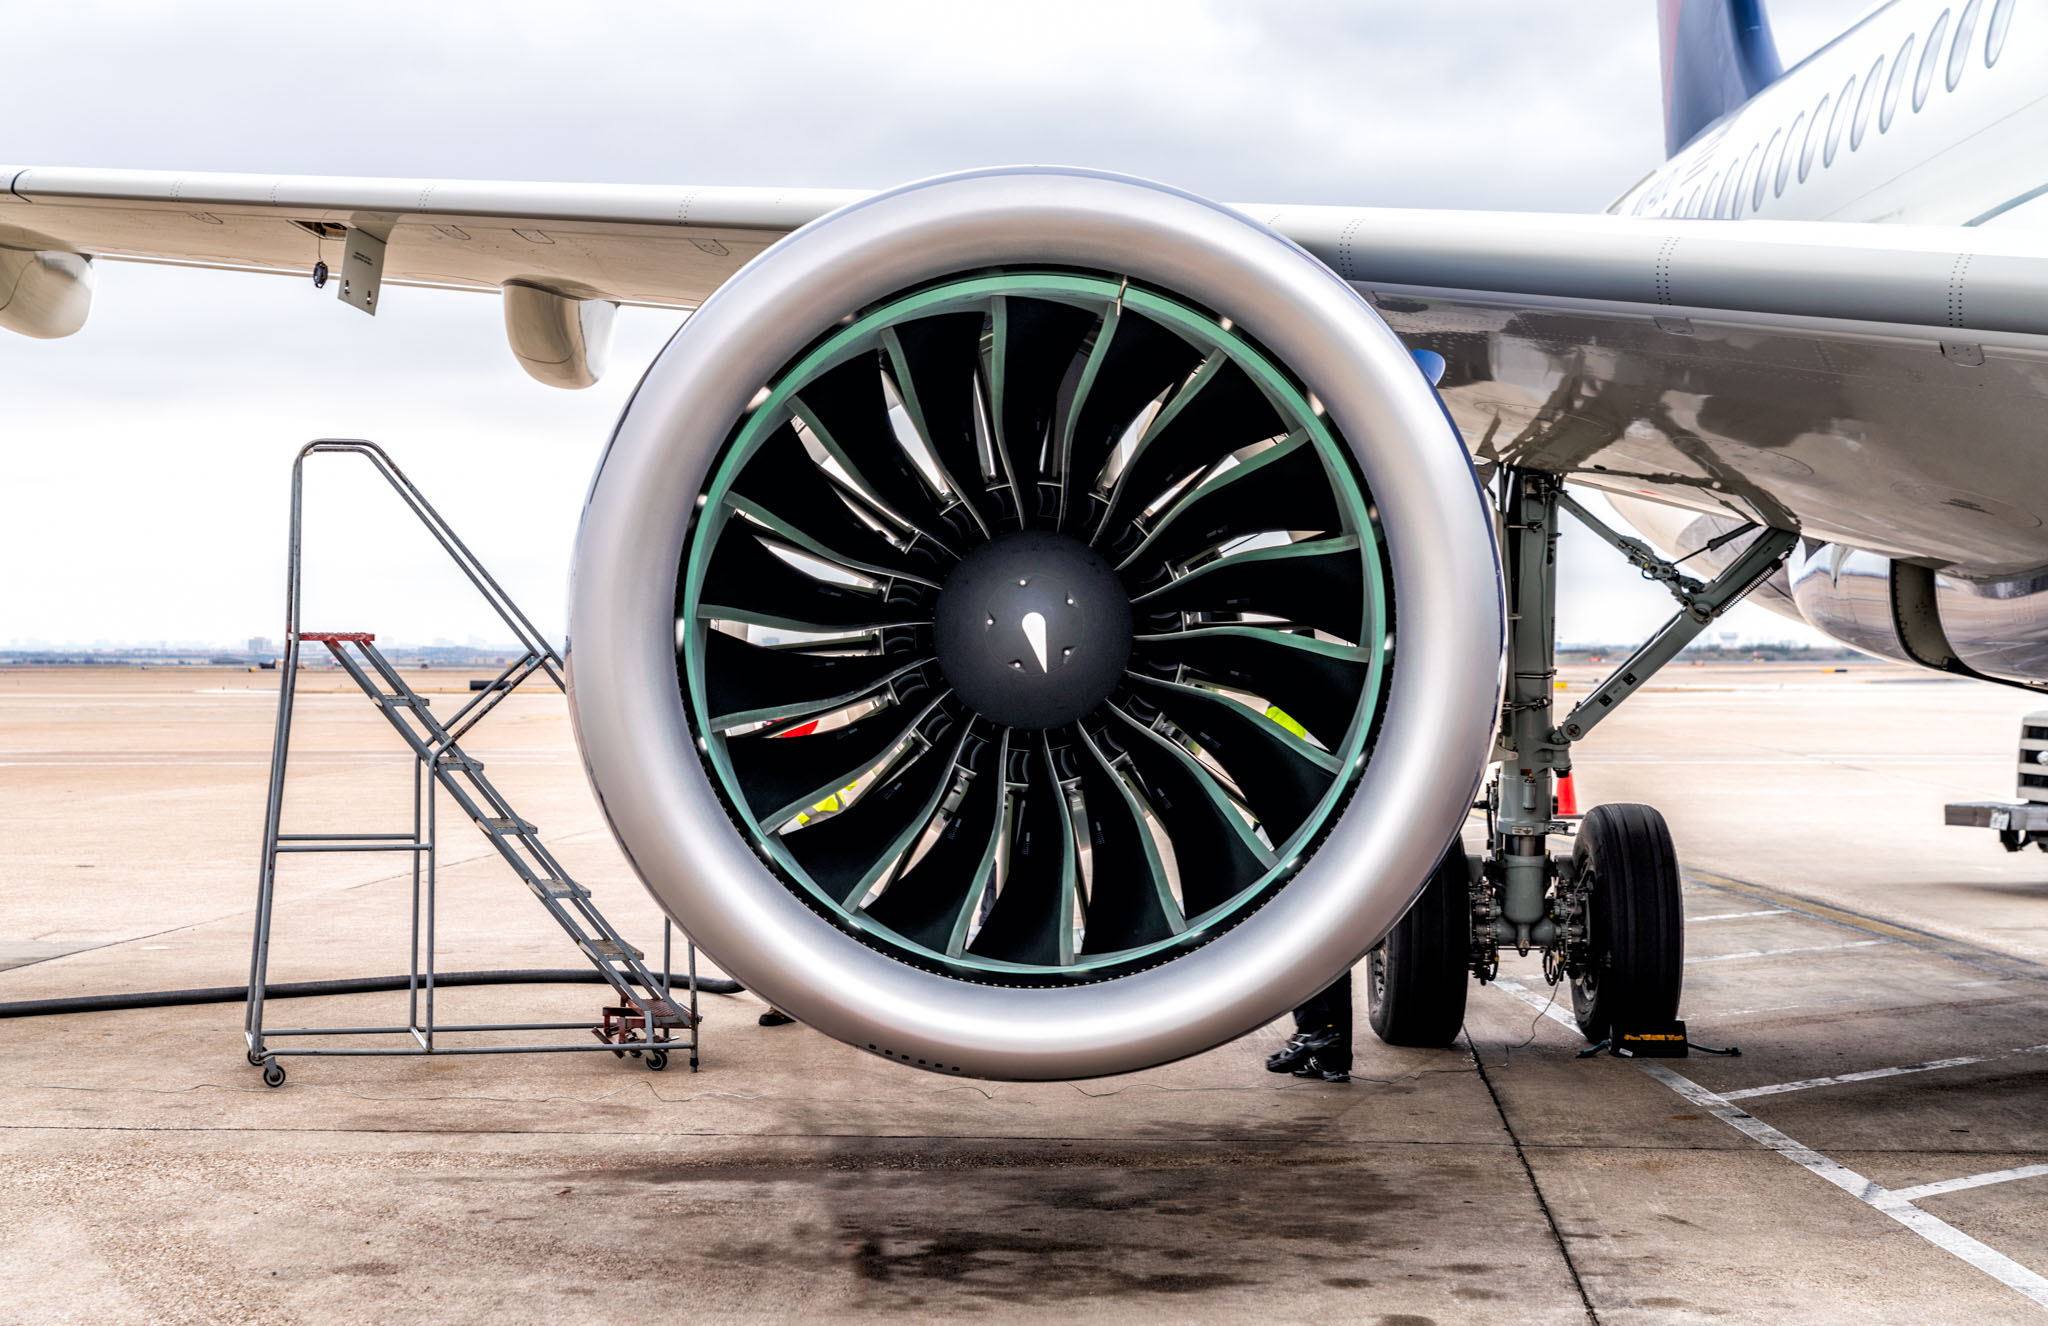 Problems with engines and duopoly